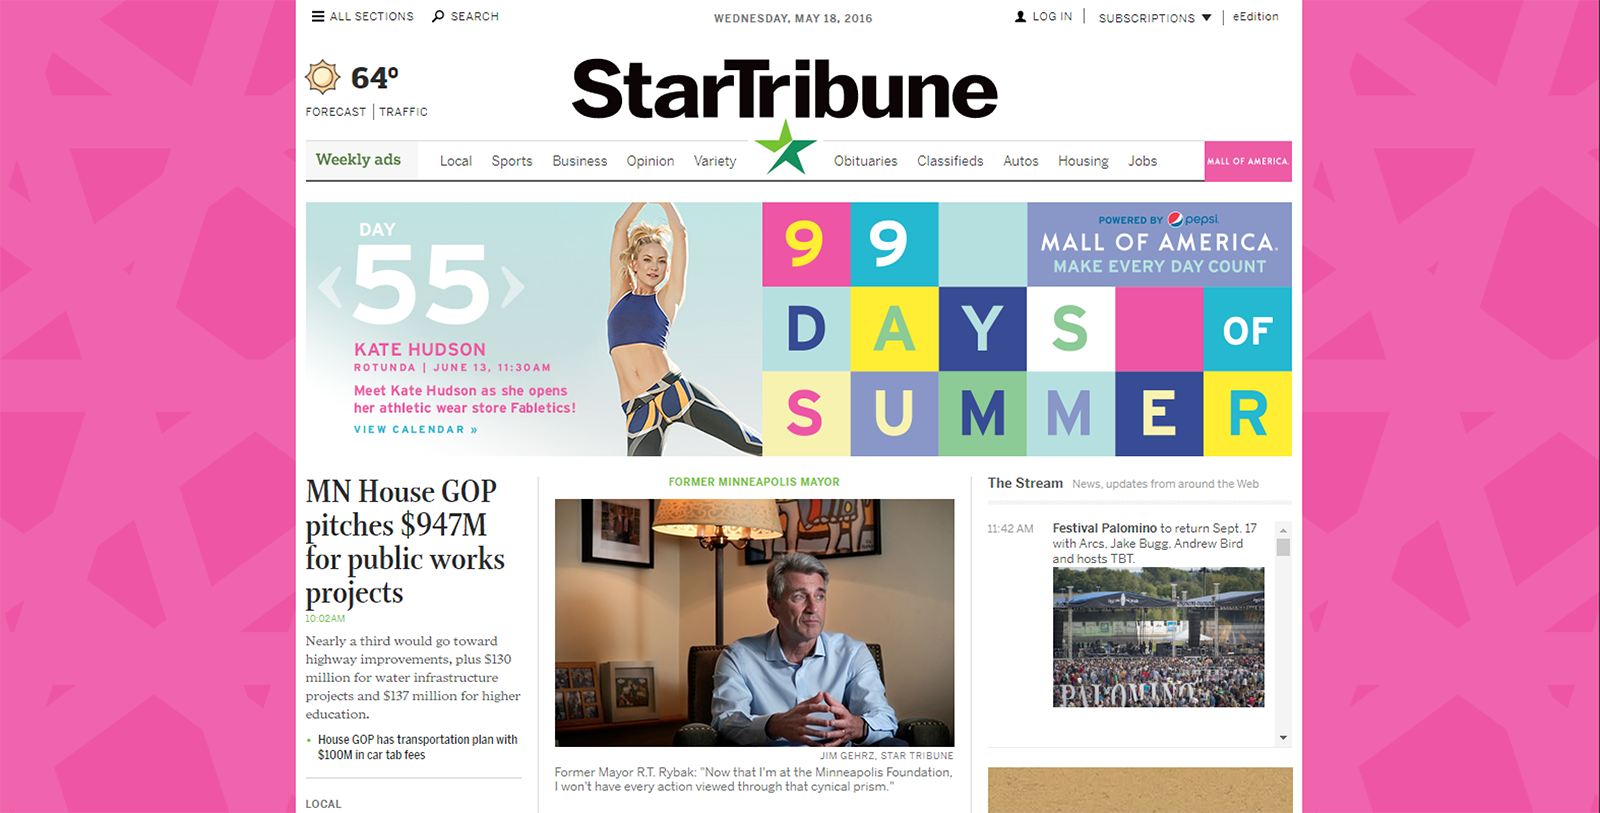 Star Tribune Website Takeover